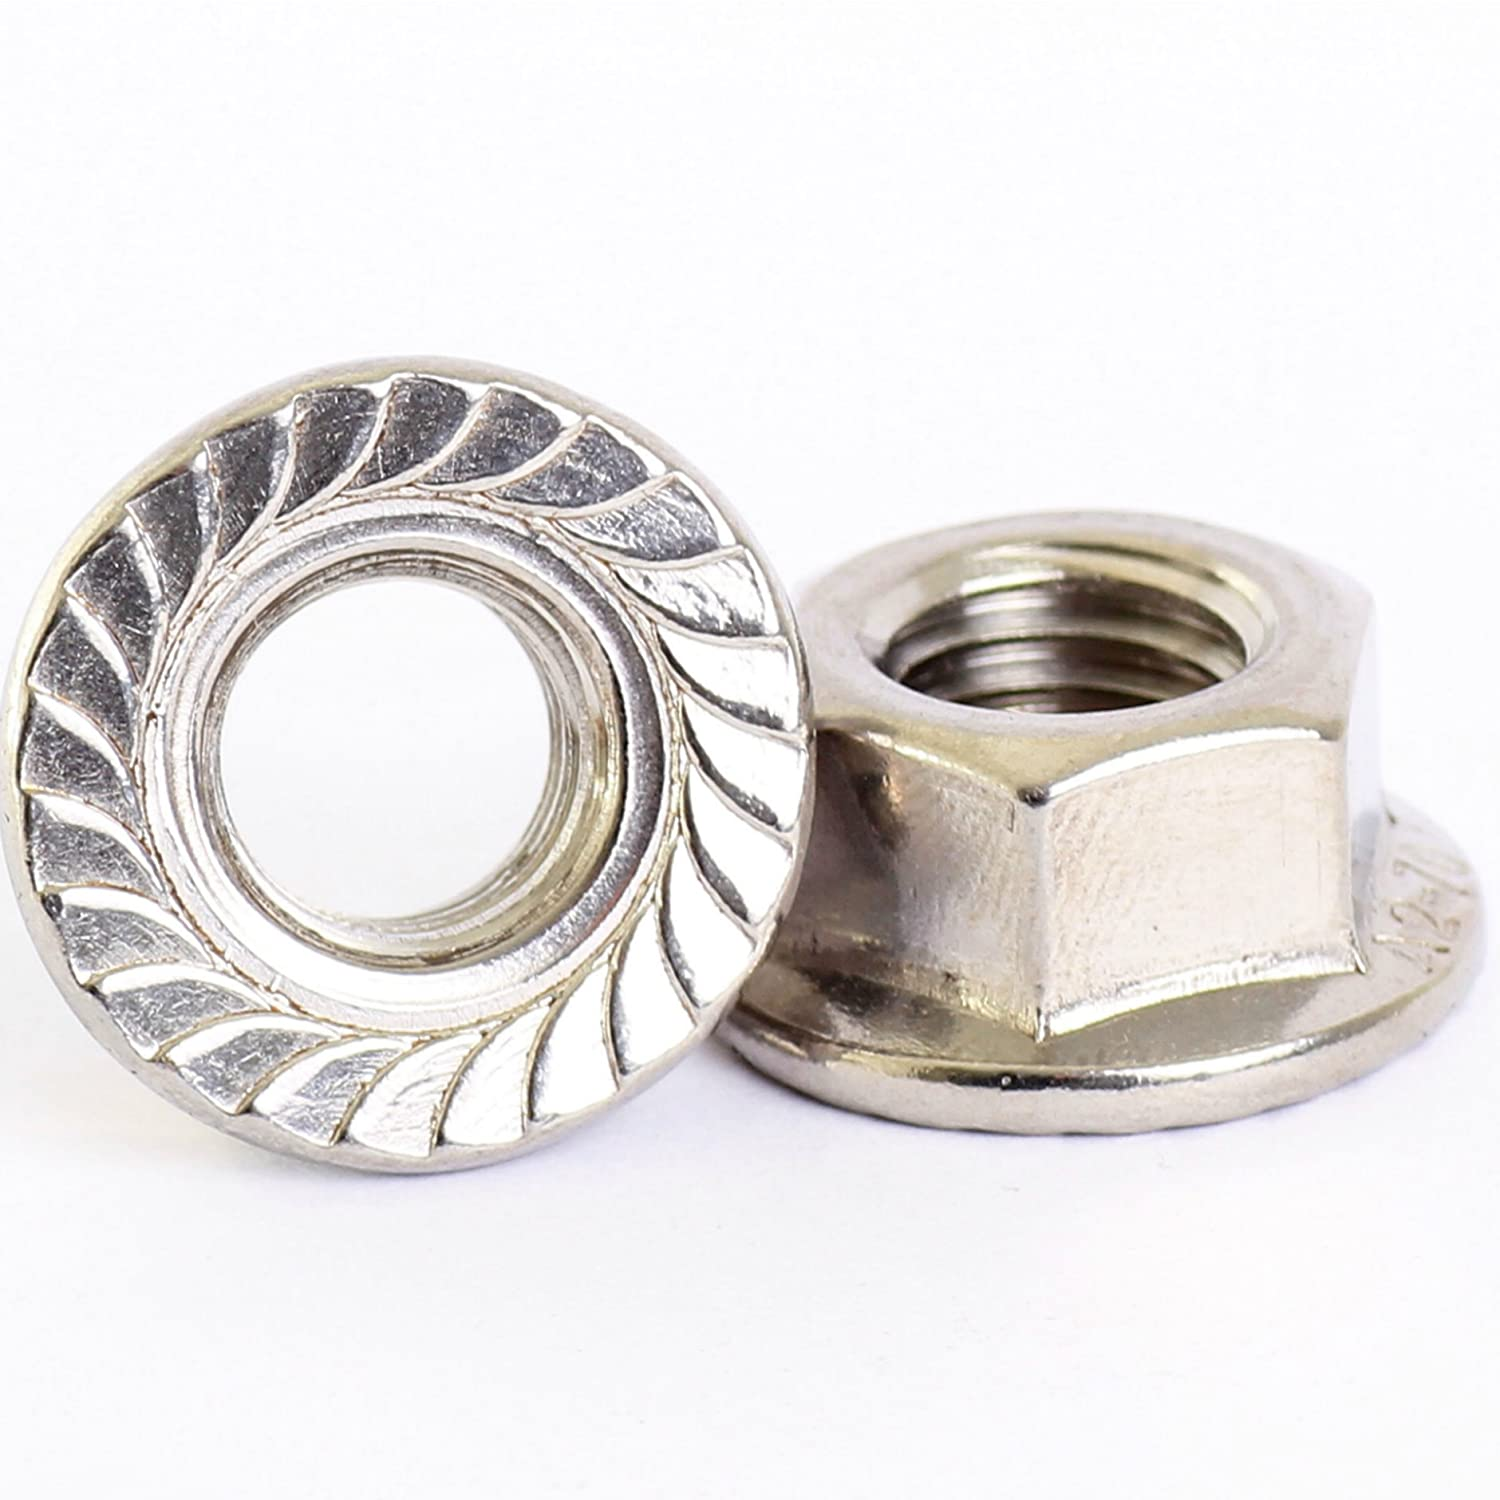 Bolt Base A2 Stainless Steel Hex Serrated Flange Nuts Flanged Nuts M5 X 0.8mm Pitch - 10